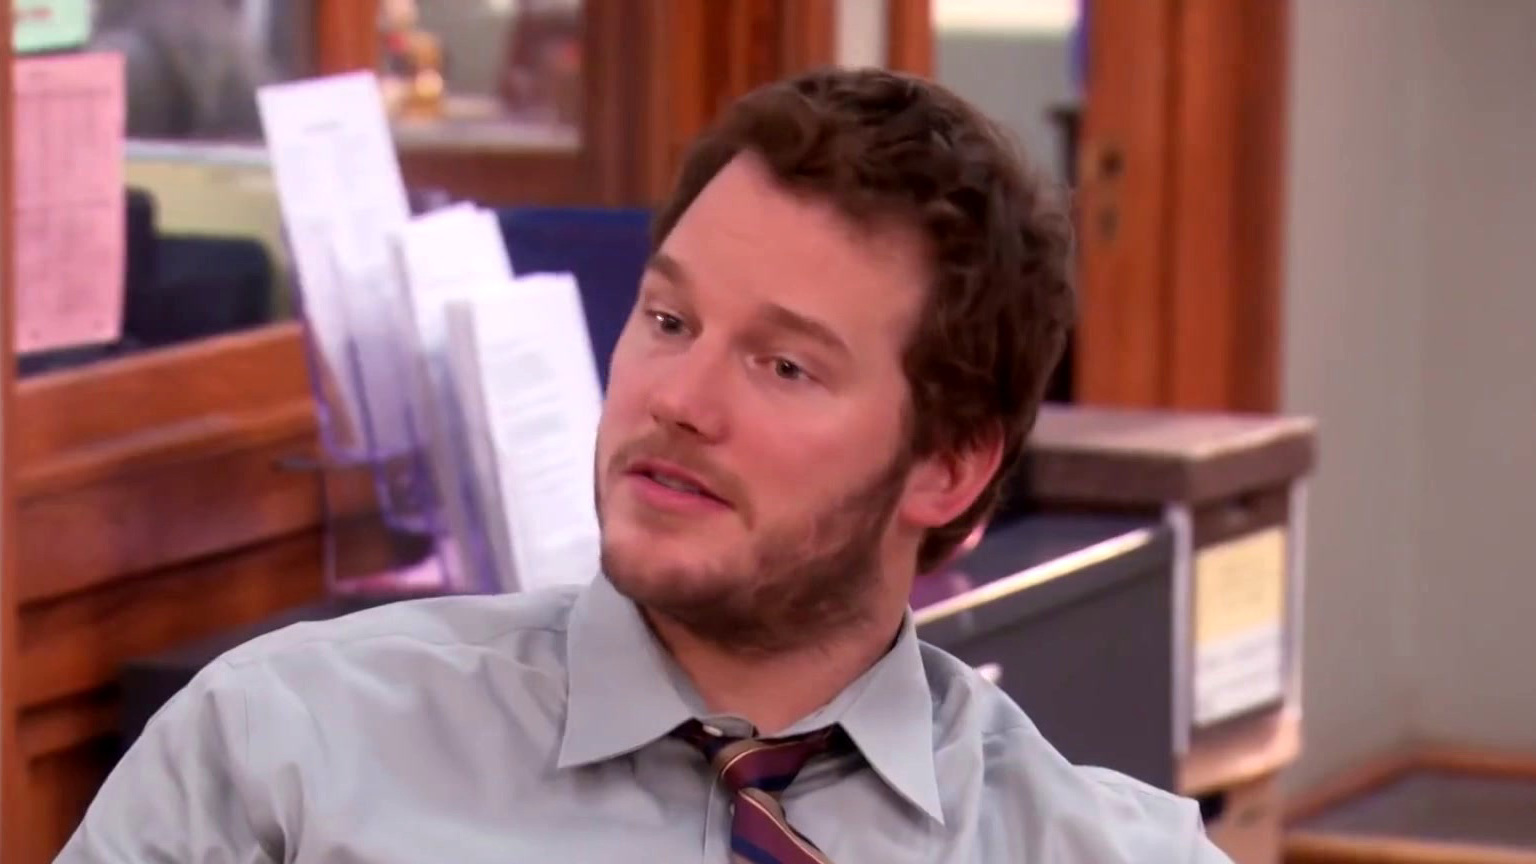 Parks And Recreation: April Becomes Leslie Knope